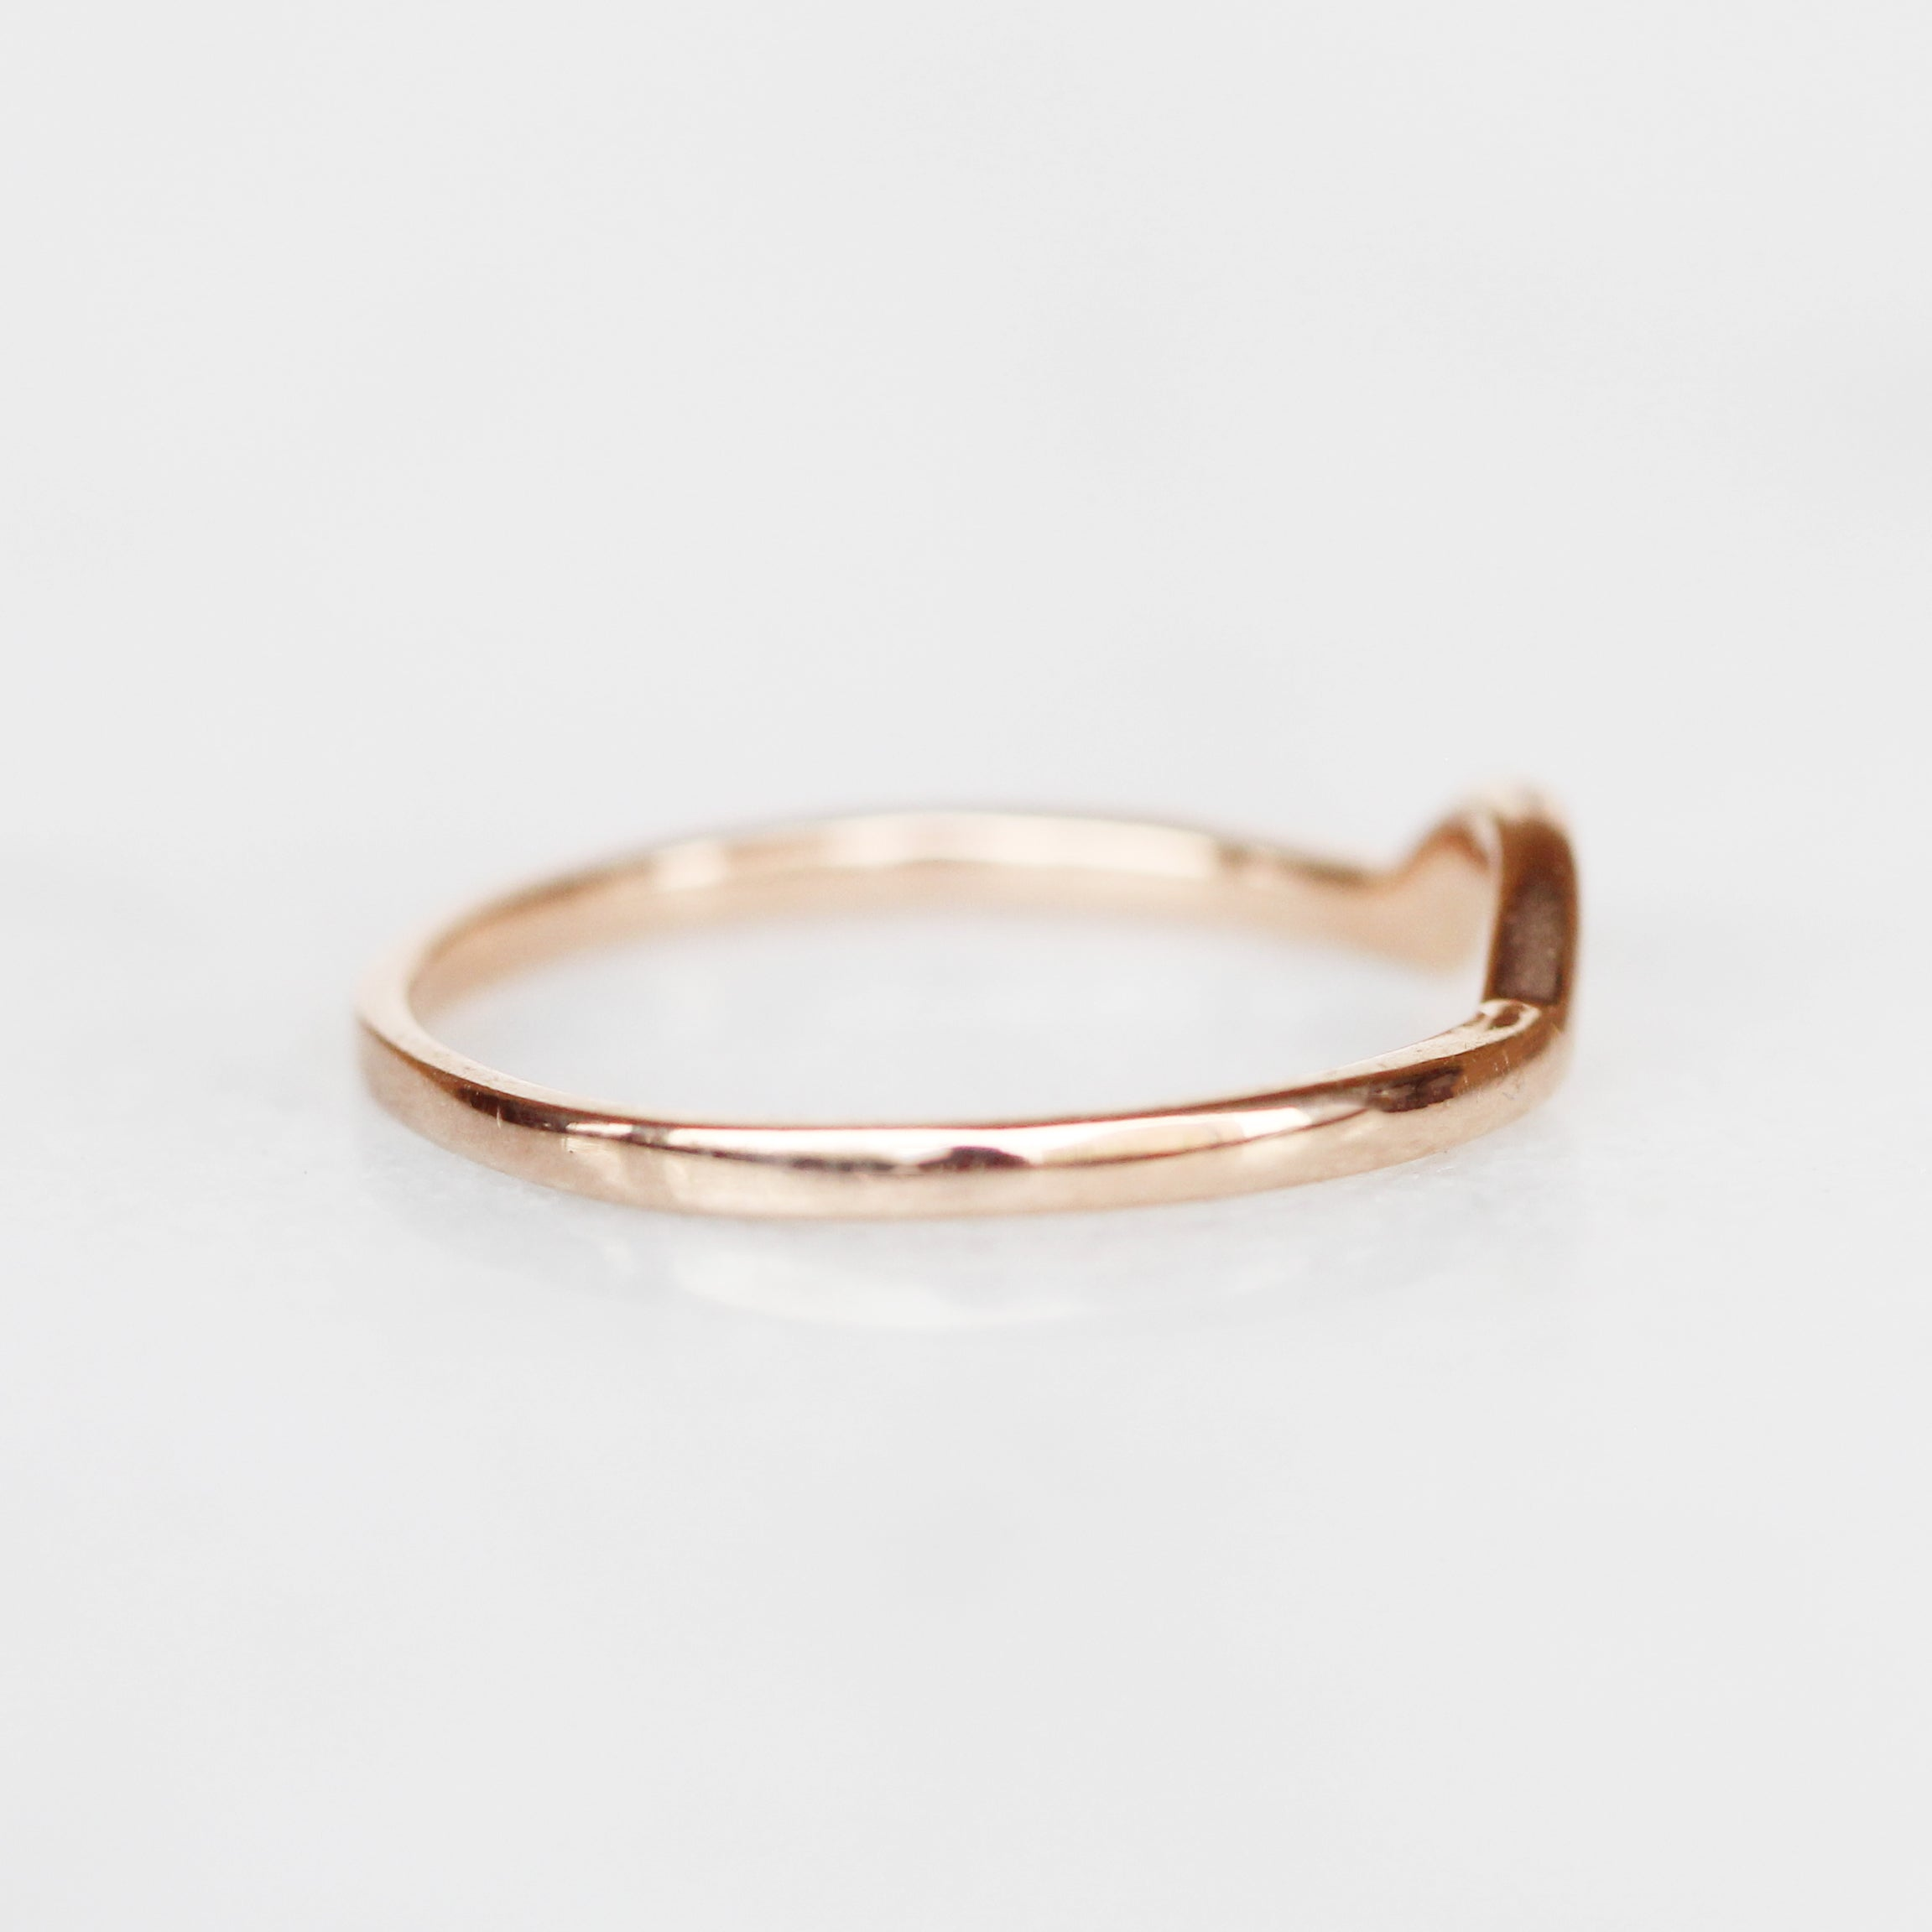 Archer wedding band - customized contour band - 14k gold of choice - Salt & Pepper Celestial Diamond Engagement Rings and Wedding Bands  by Midwinter Co.